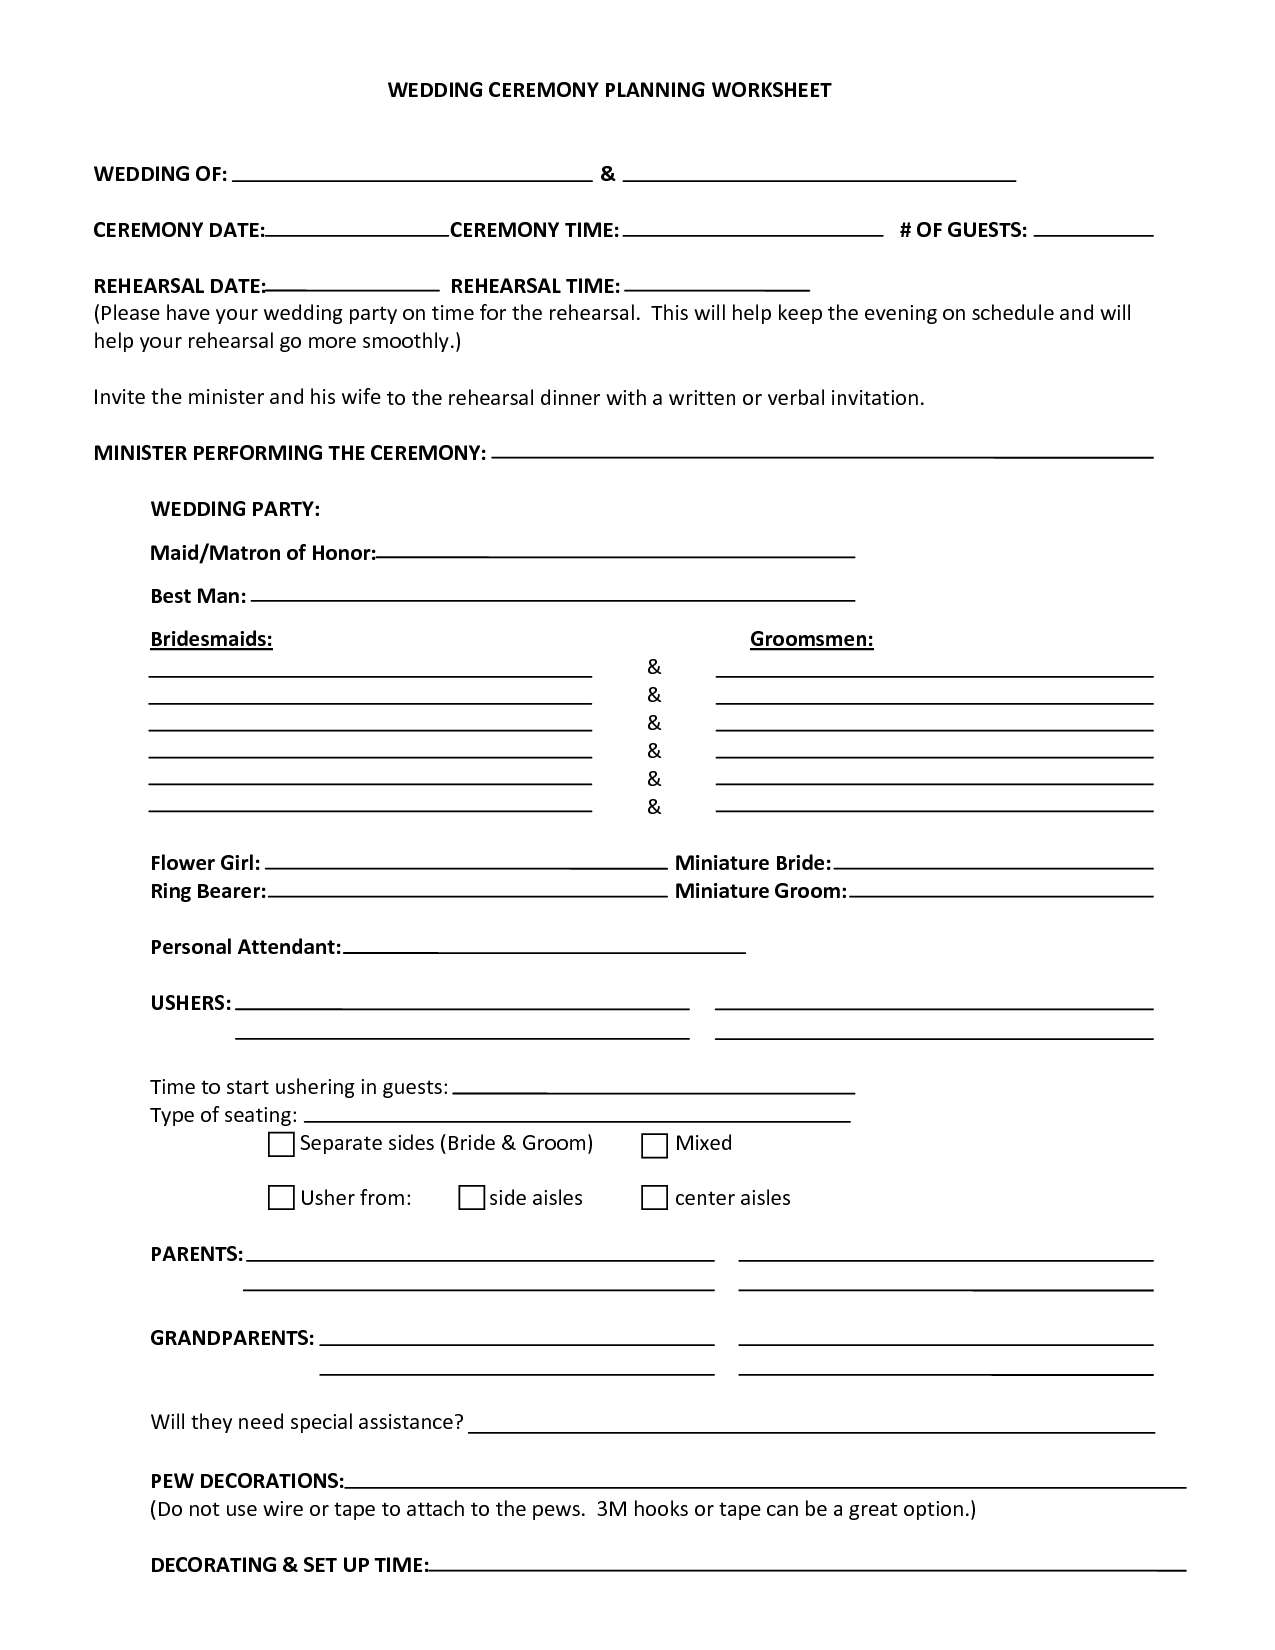 Worksheet Wedding Planning Worksheets 5 best images of free printable wedding planner worksheets planning worksheet template